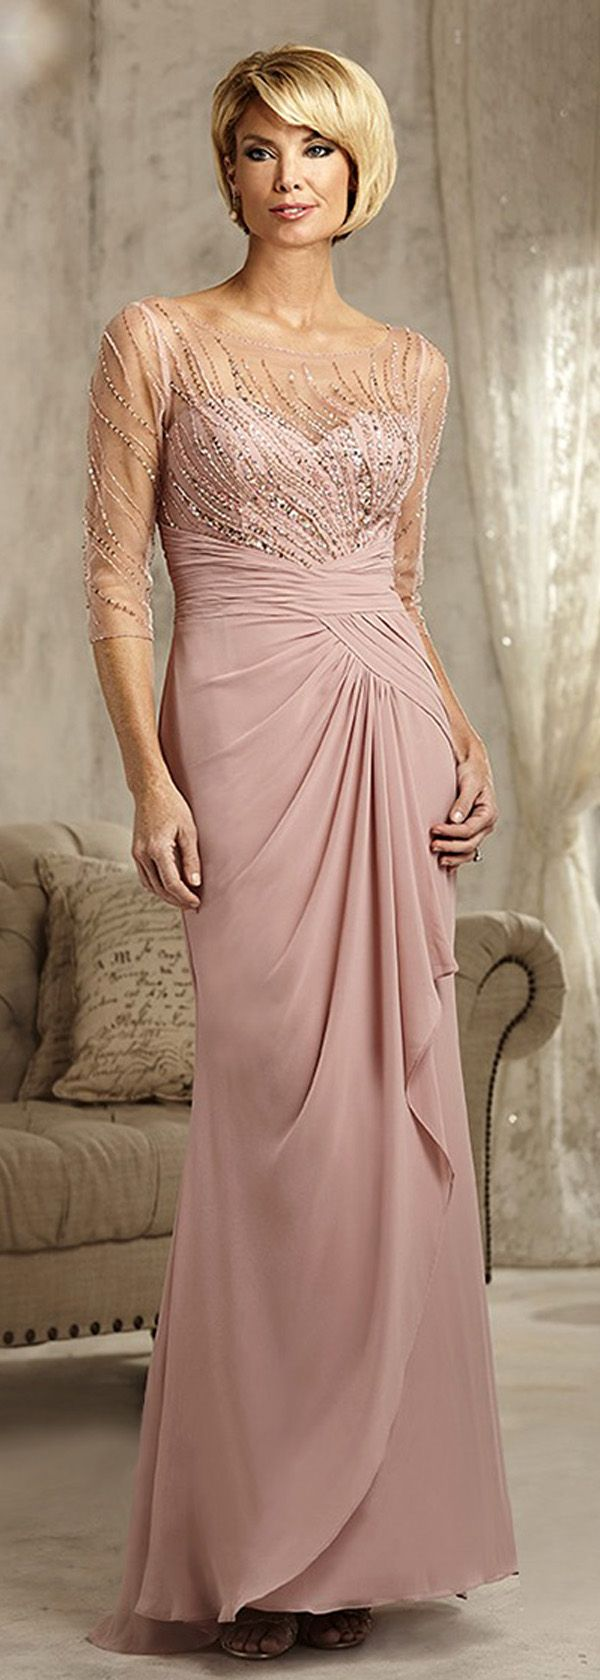 best 25 mother of groom dresses ideas only on pinterest brides mom dress mothers dresses and dresses for brides mother